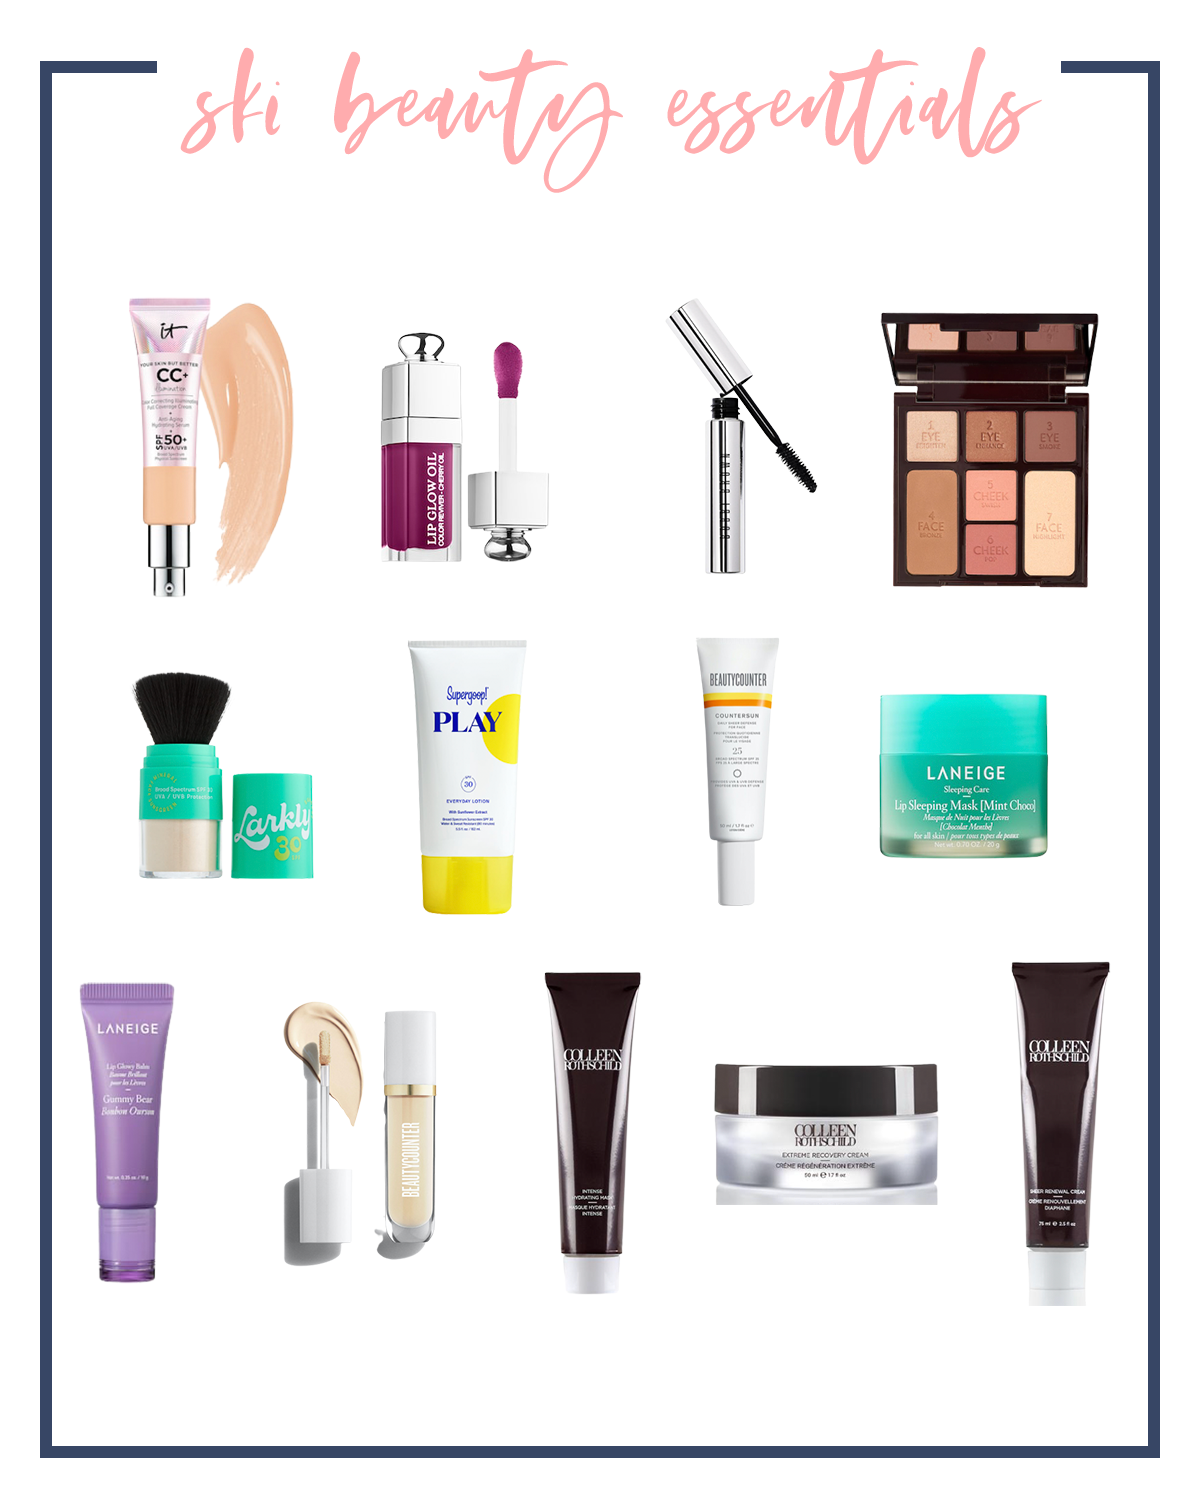 Beauty Essentials by popular Houston fashion blog, Fancy Ashley: collage image of it Cosmetics cc cream, lip oil, mascara, eyeshadow pallet, supergoop! play, Laneige lip mask, Beauty Countery sunscreen, Lanky SPF face powder, and Colleen Rothschild beauty products.